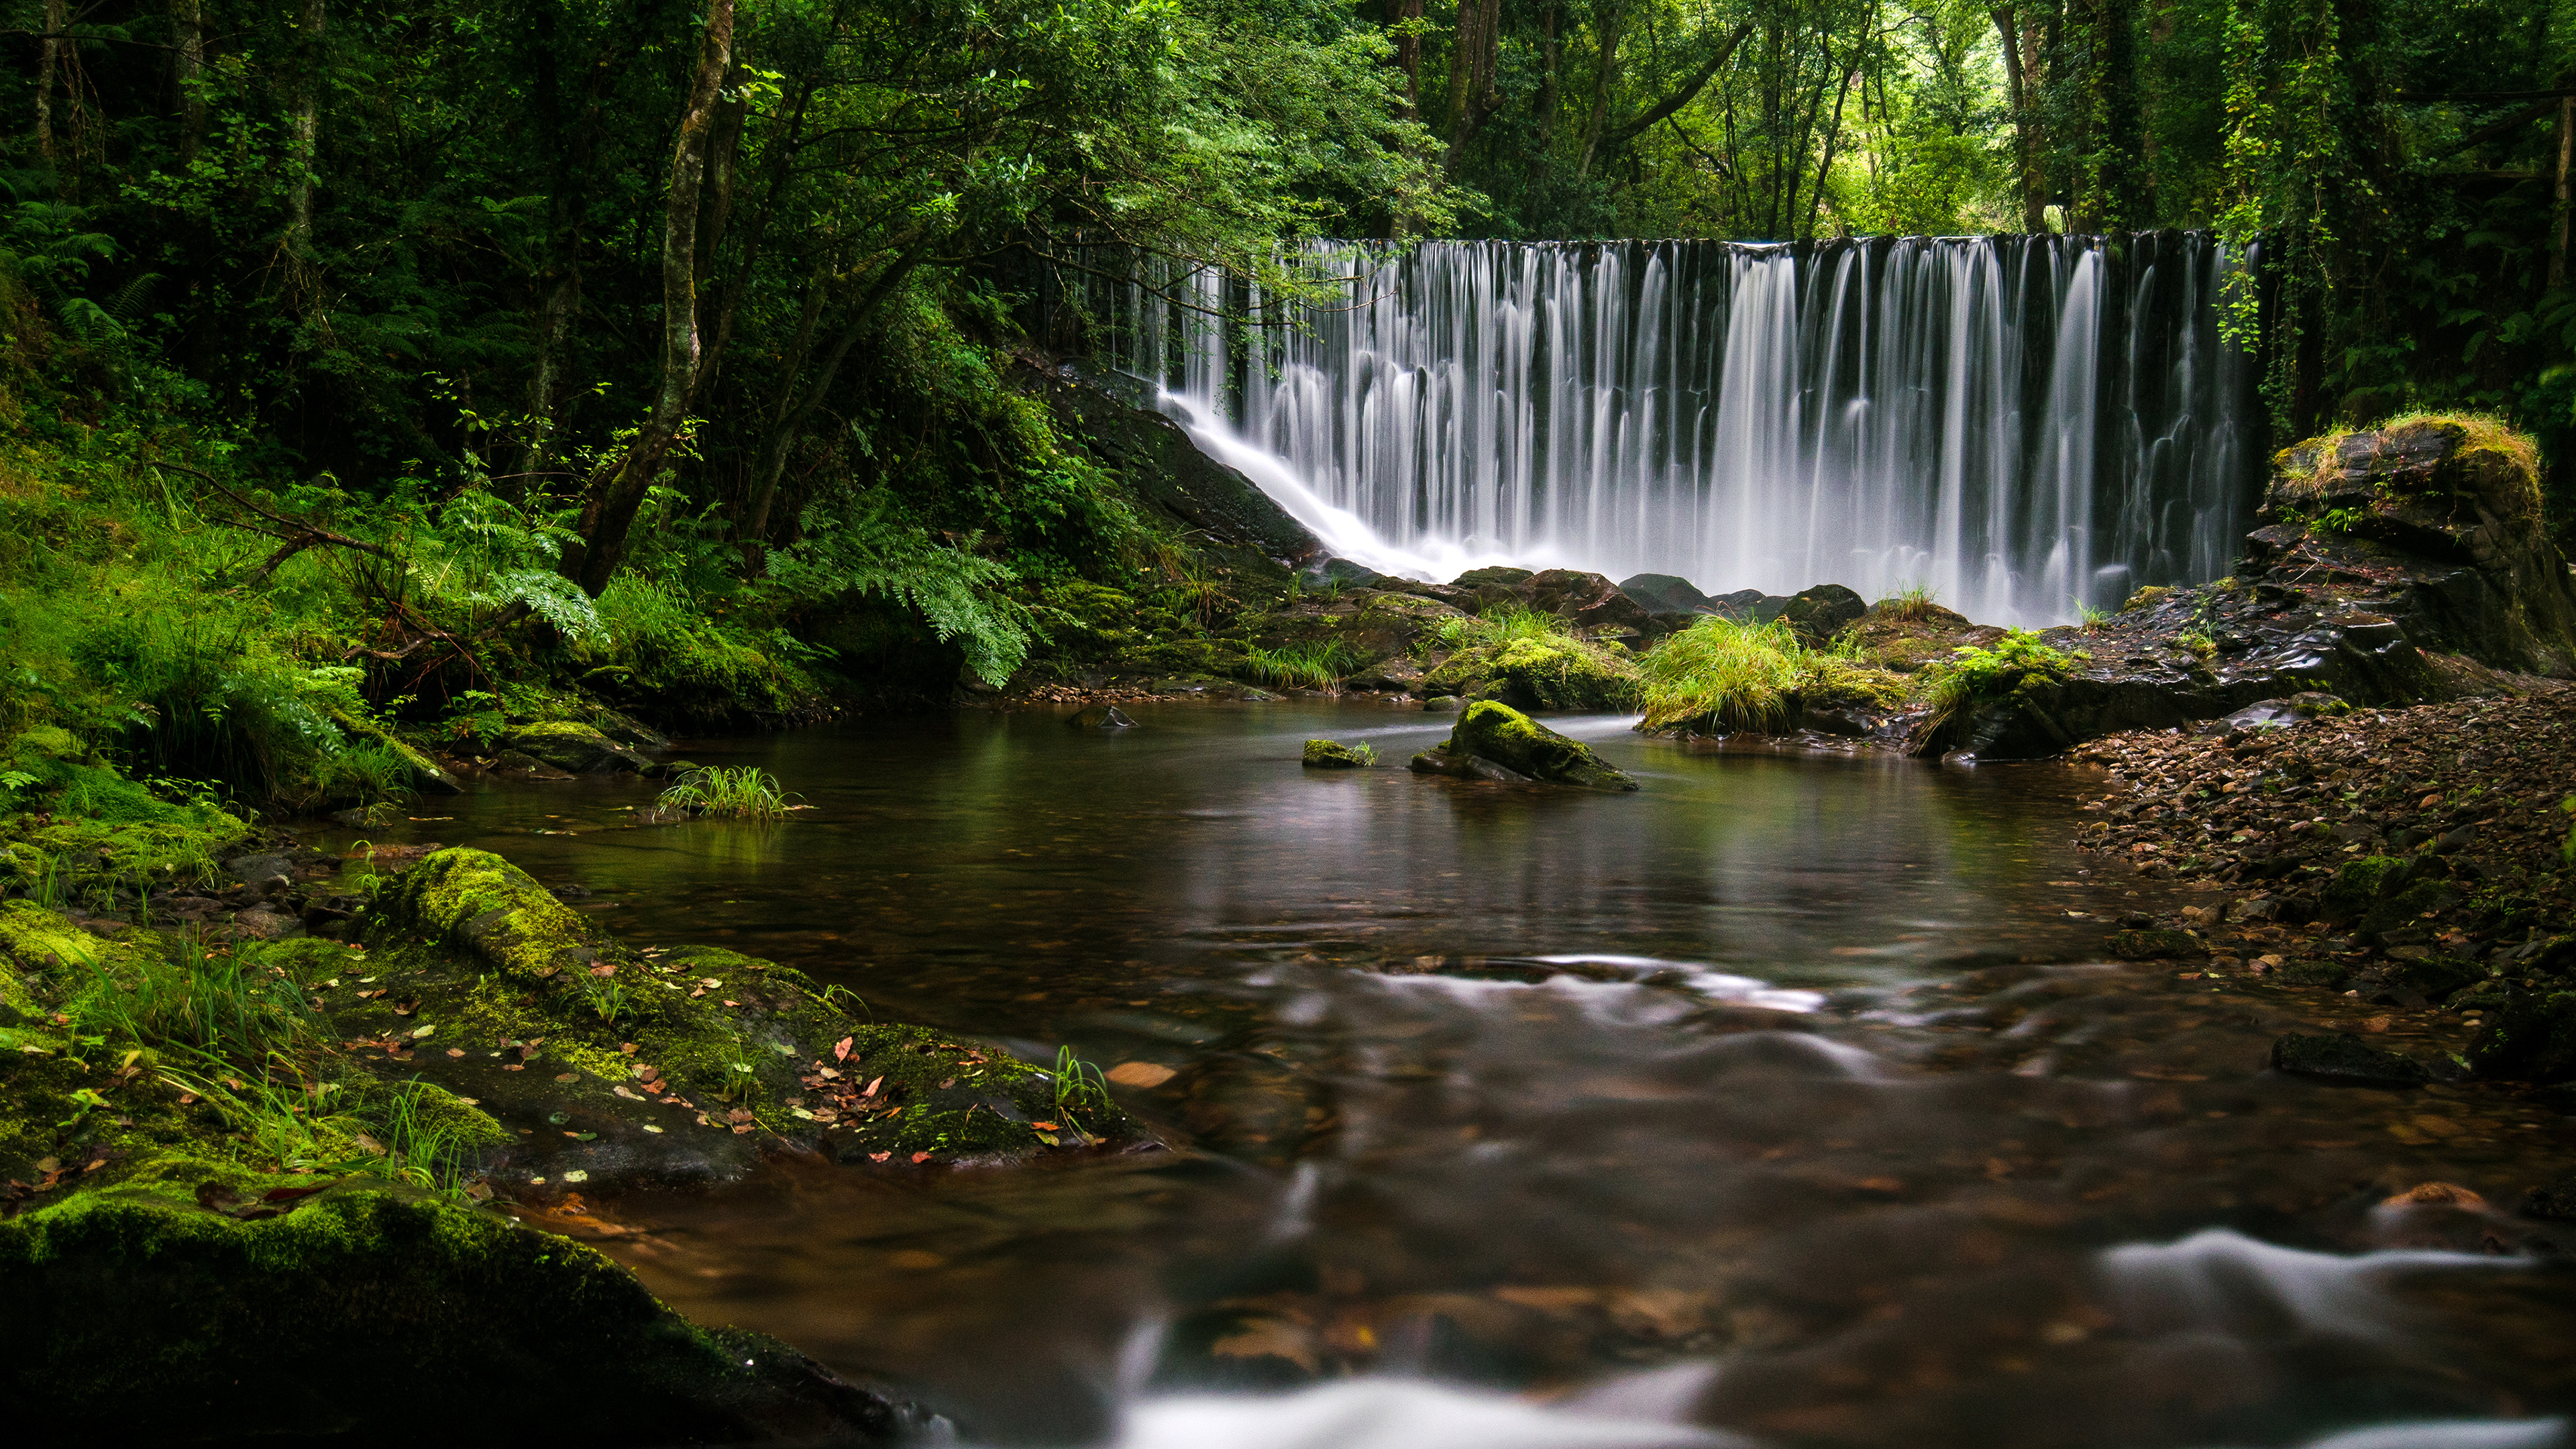 Fall Typography Laptop Wallpaper Galician Waterfall 4k Hd Nature 4k Wallpapers Images